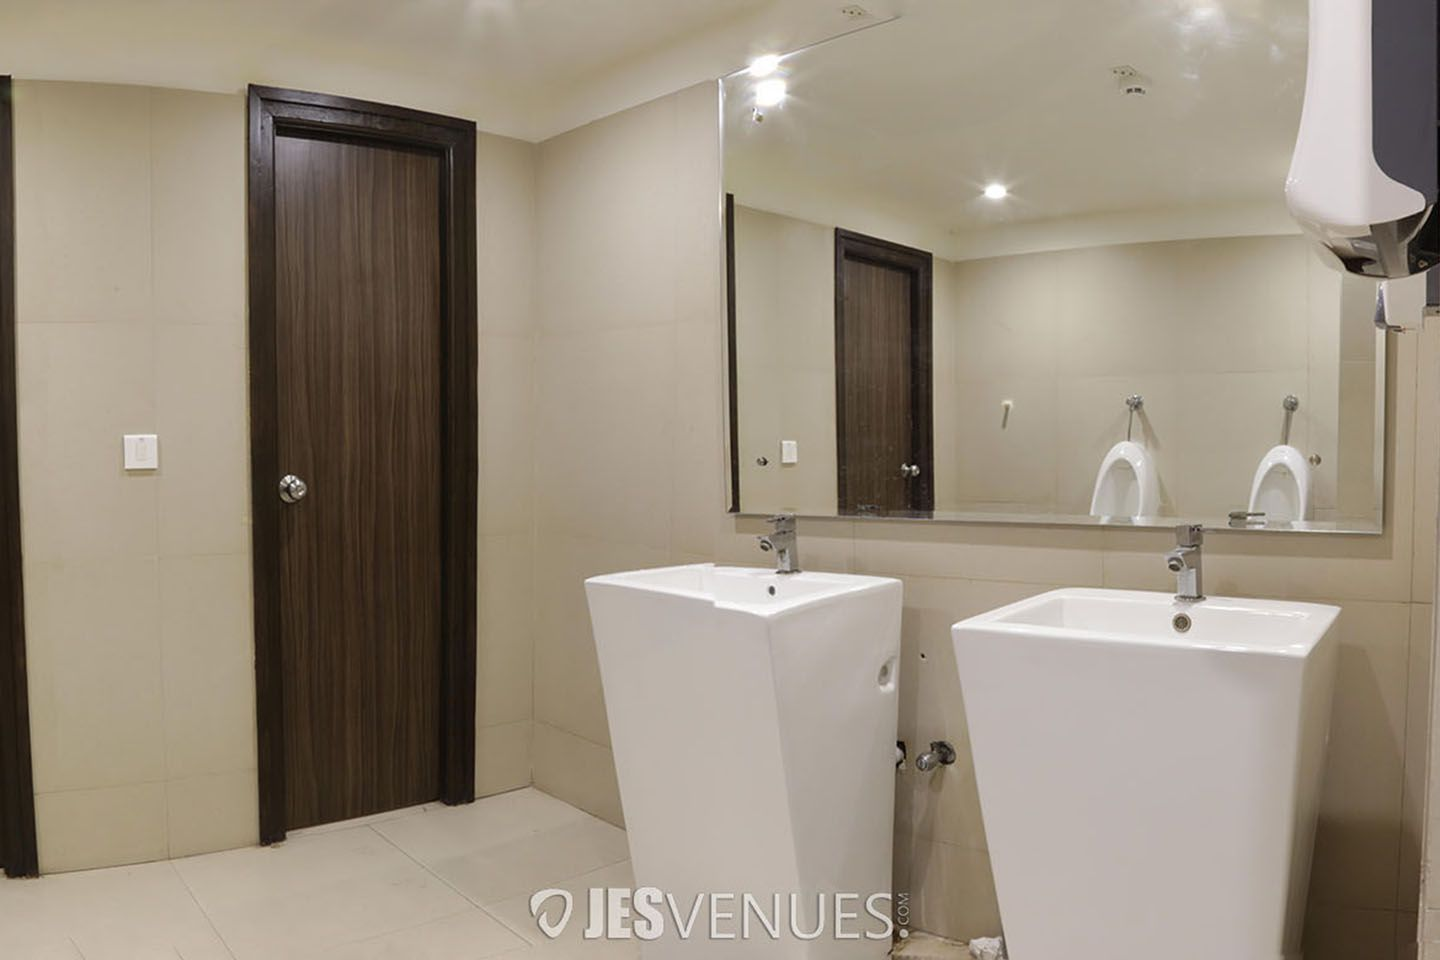 washroom/Wash Room.jpg